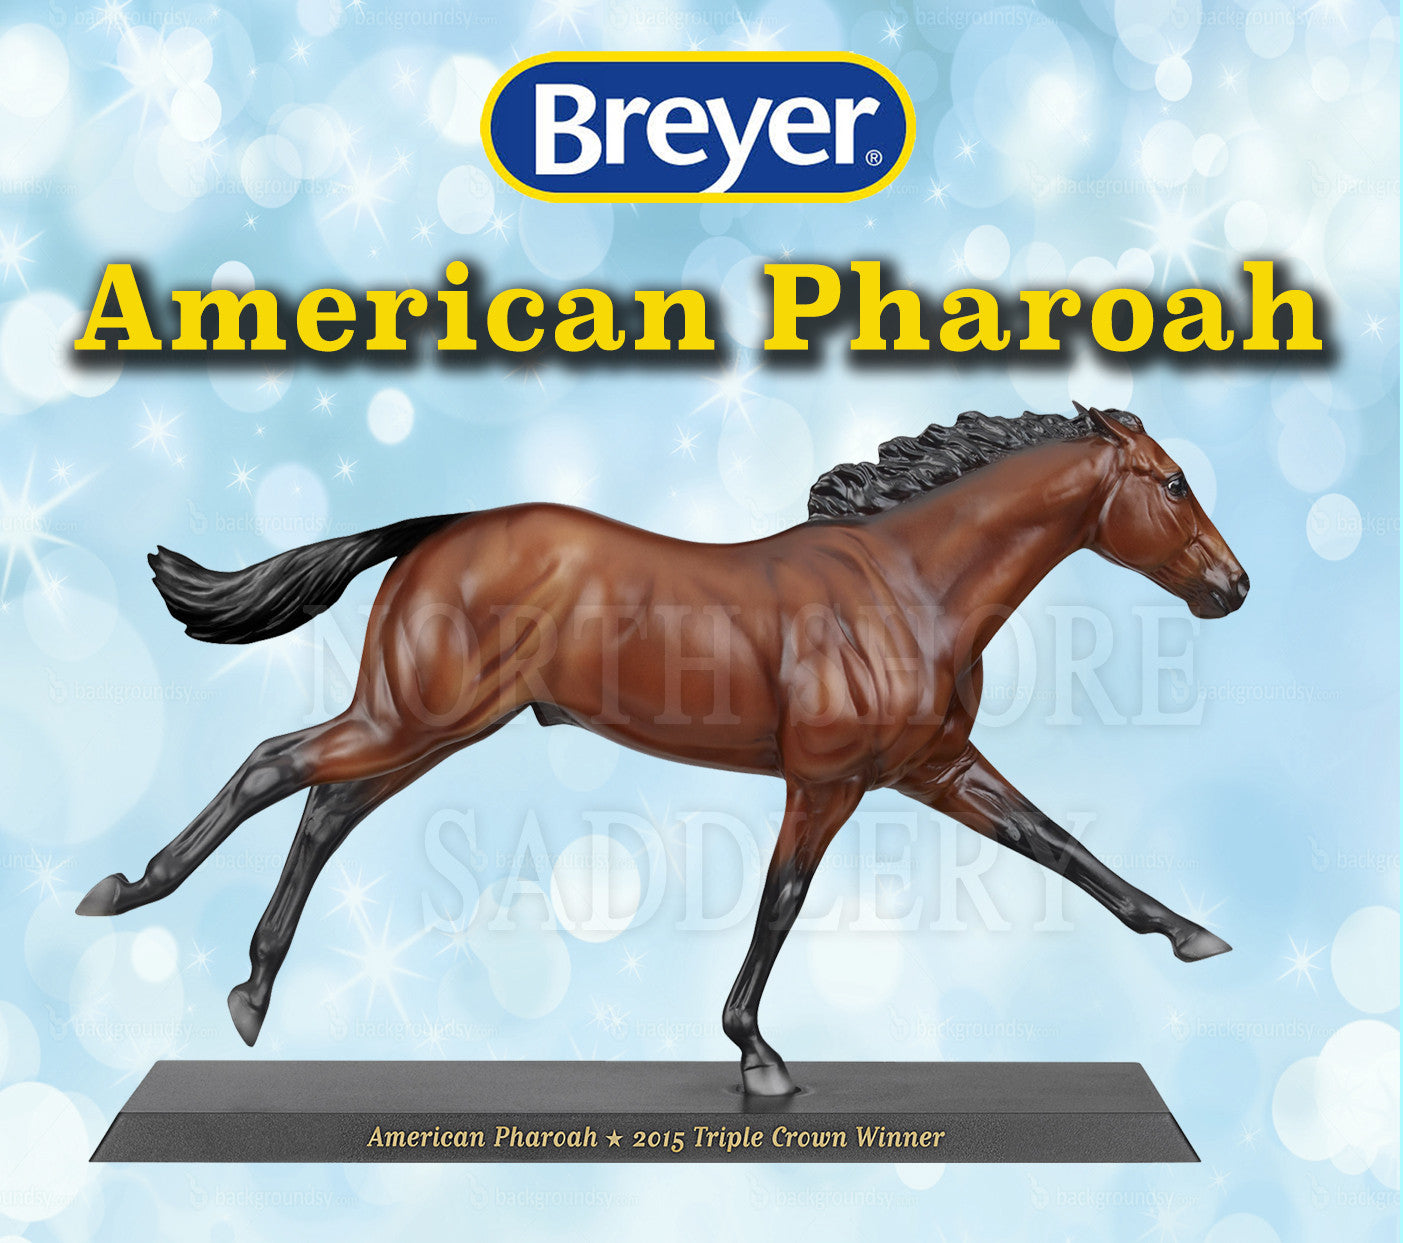 Breyer American Pharoah - Triple Crown Winner 2015 - North Shore Saddlery